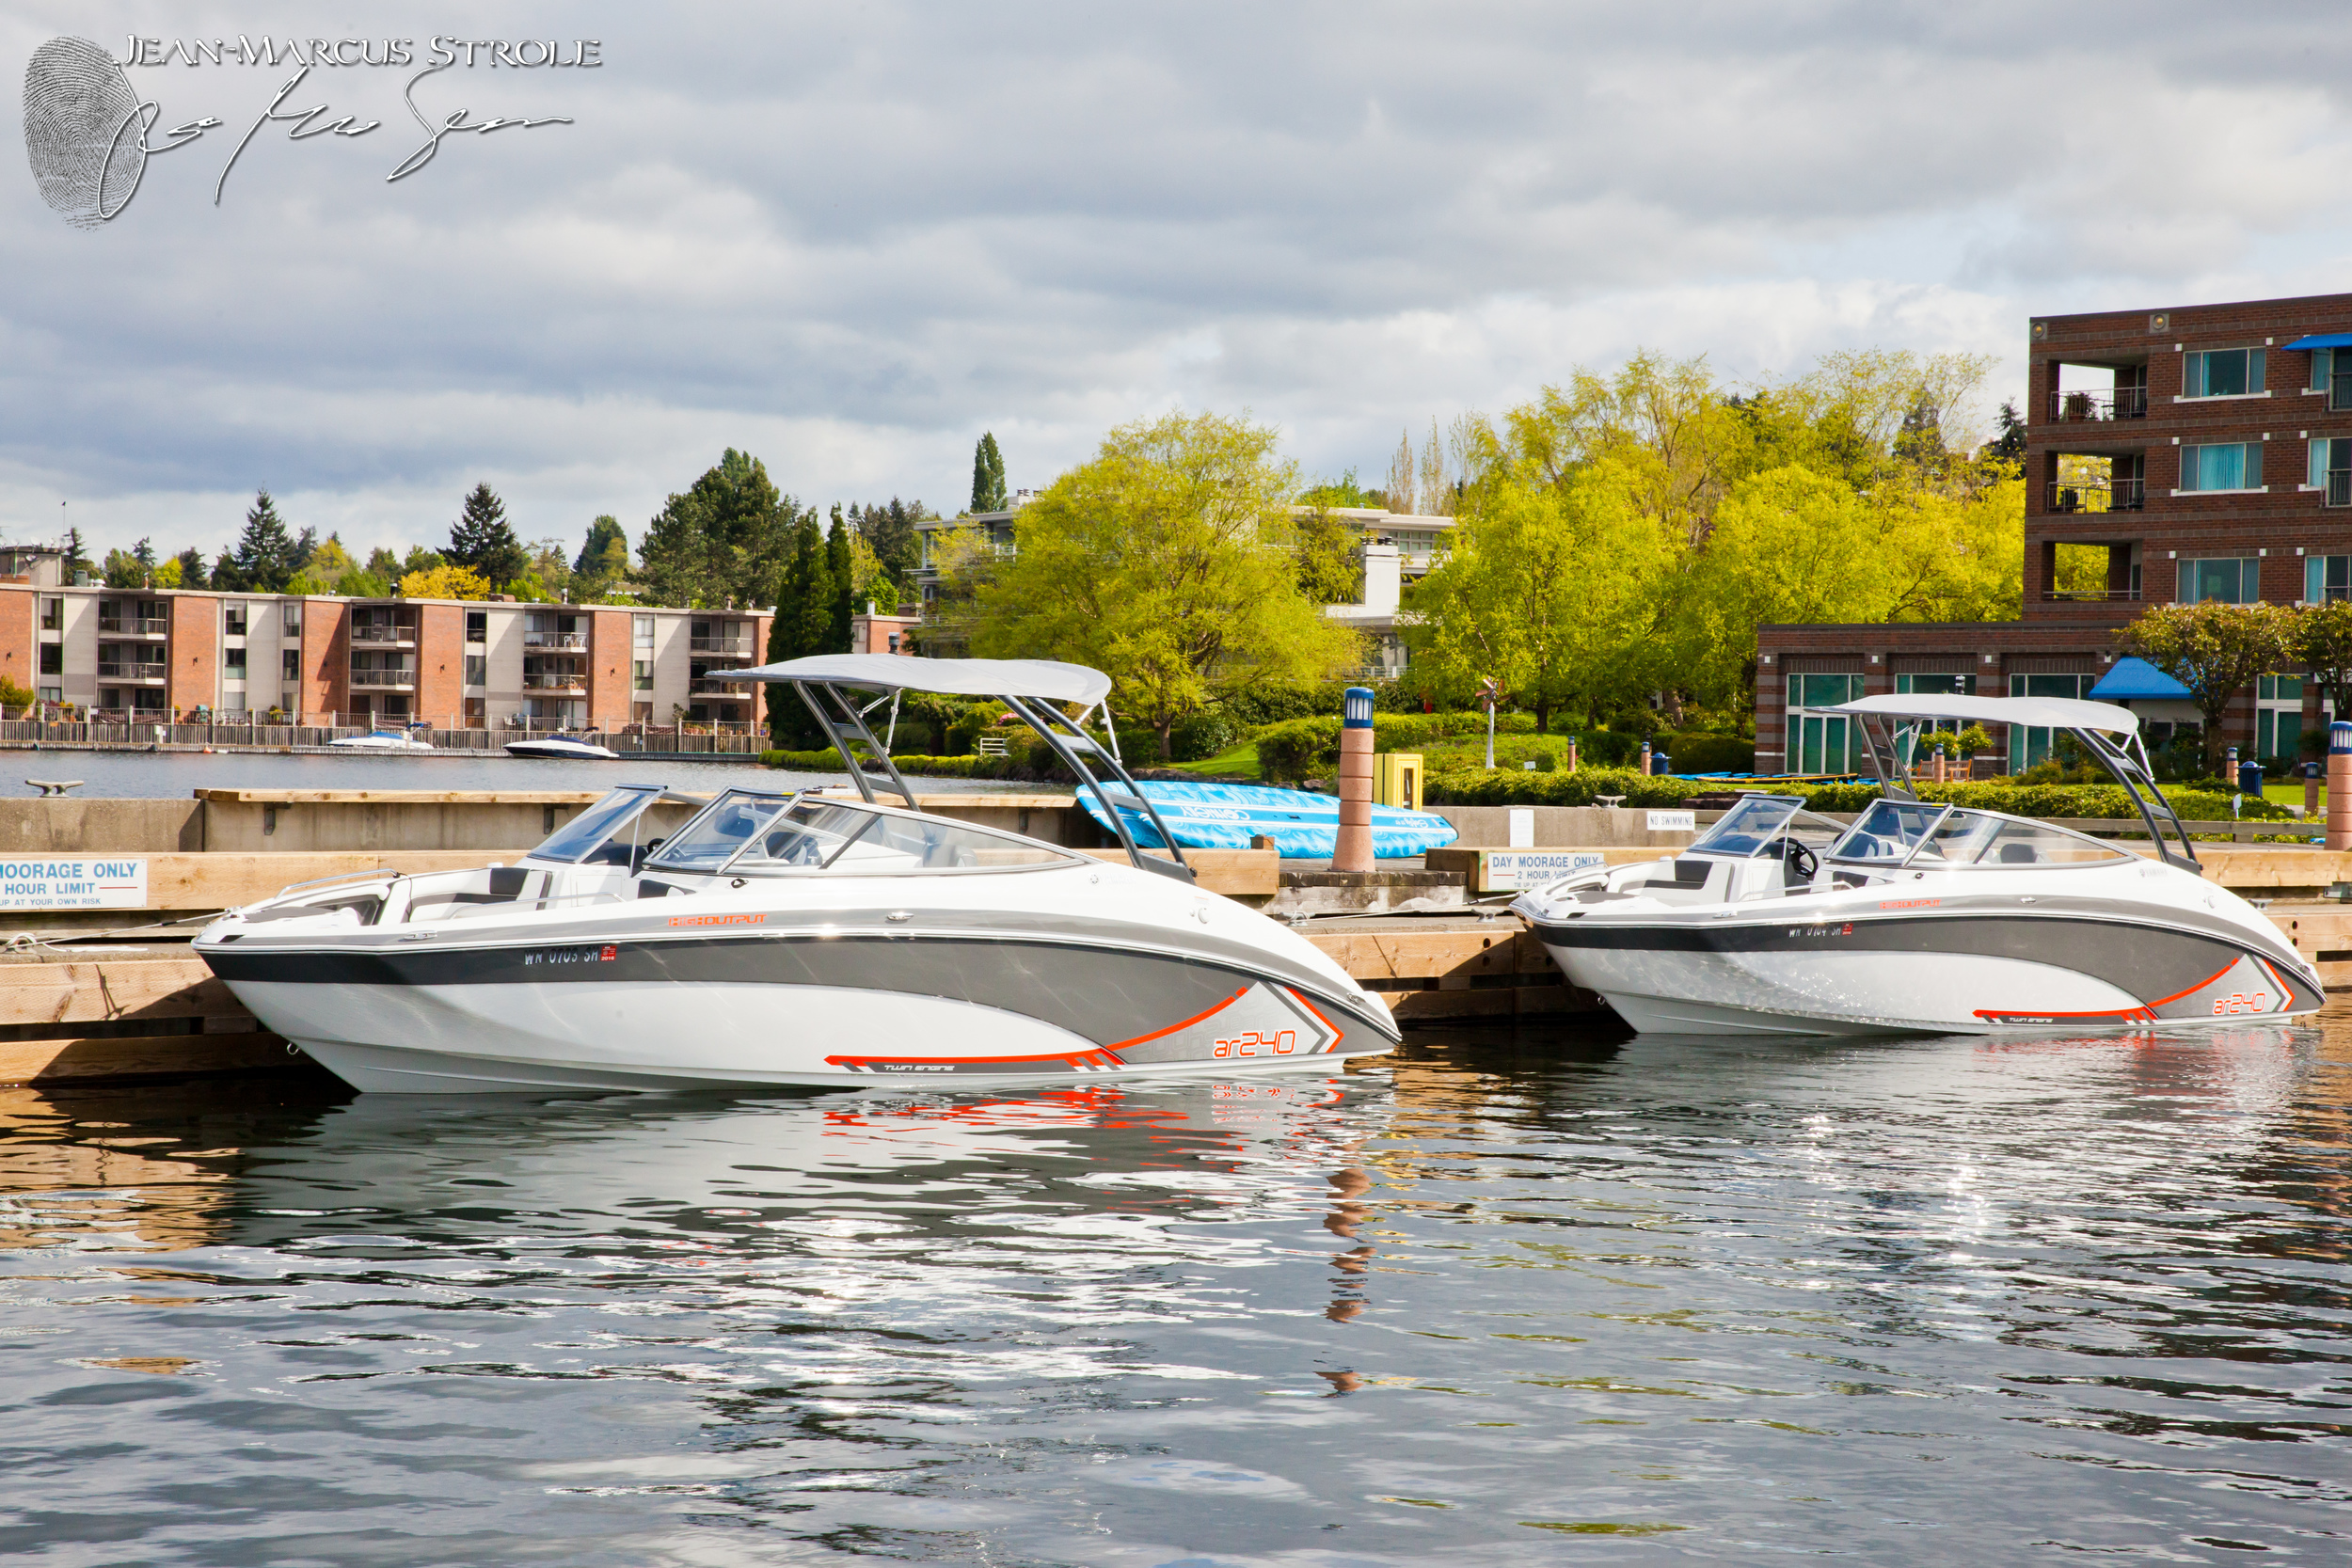 Carillon_Point_Waterfront_Adventures-Jean-Marcus_Strole_Photography-19.jpg